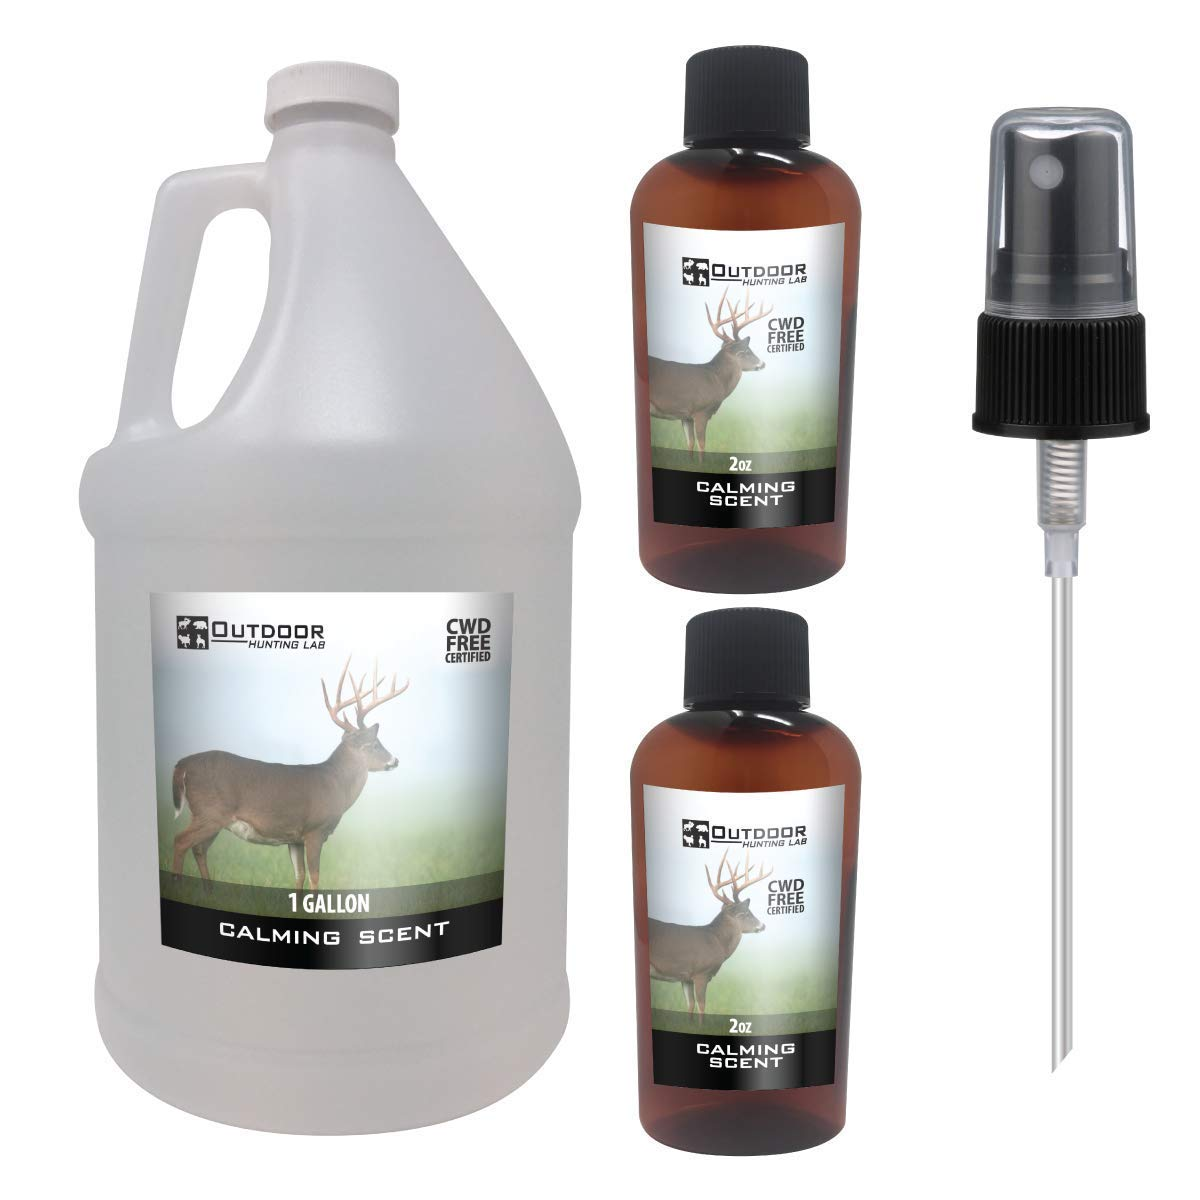 Outdoor Hunting Lab Calming Scent Ever Calm Deer Attractant Buck Lure Whitetail Hunting Cover Urine Pee Spray(1 Gallon) by Outdoor Hunting Lab